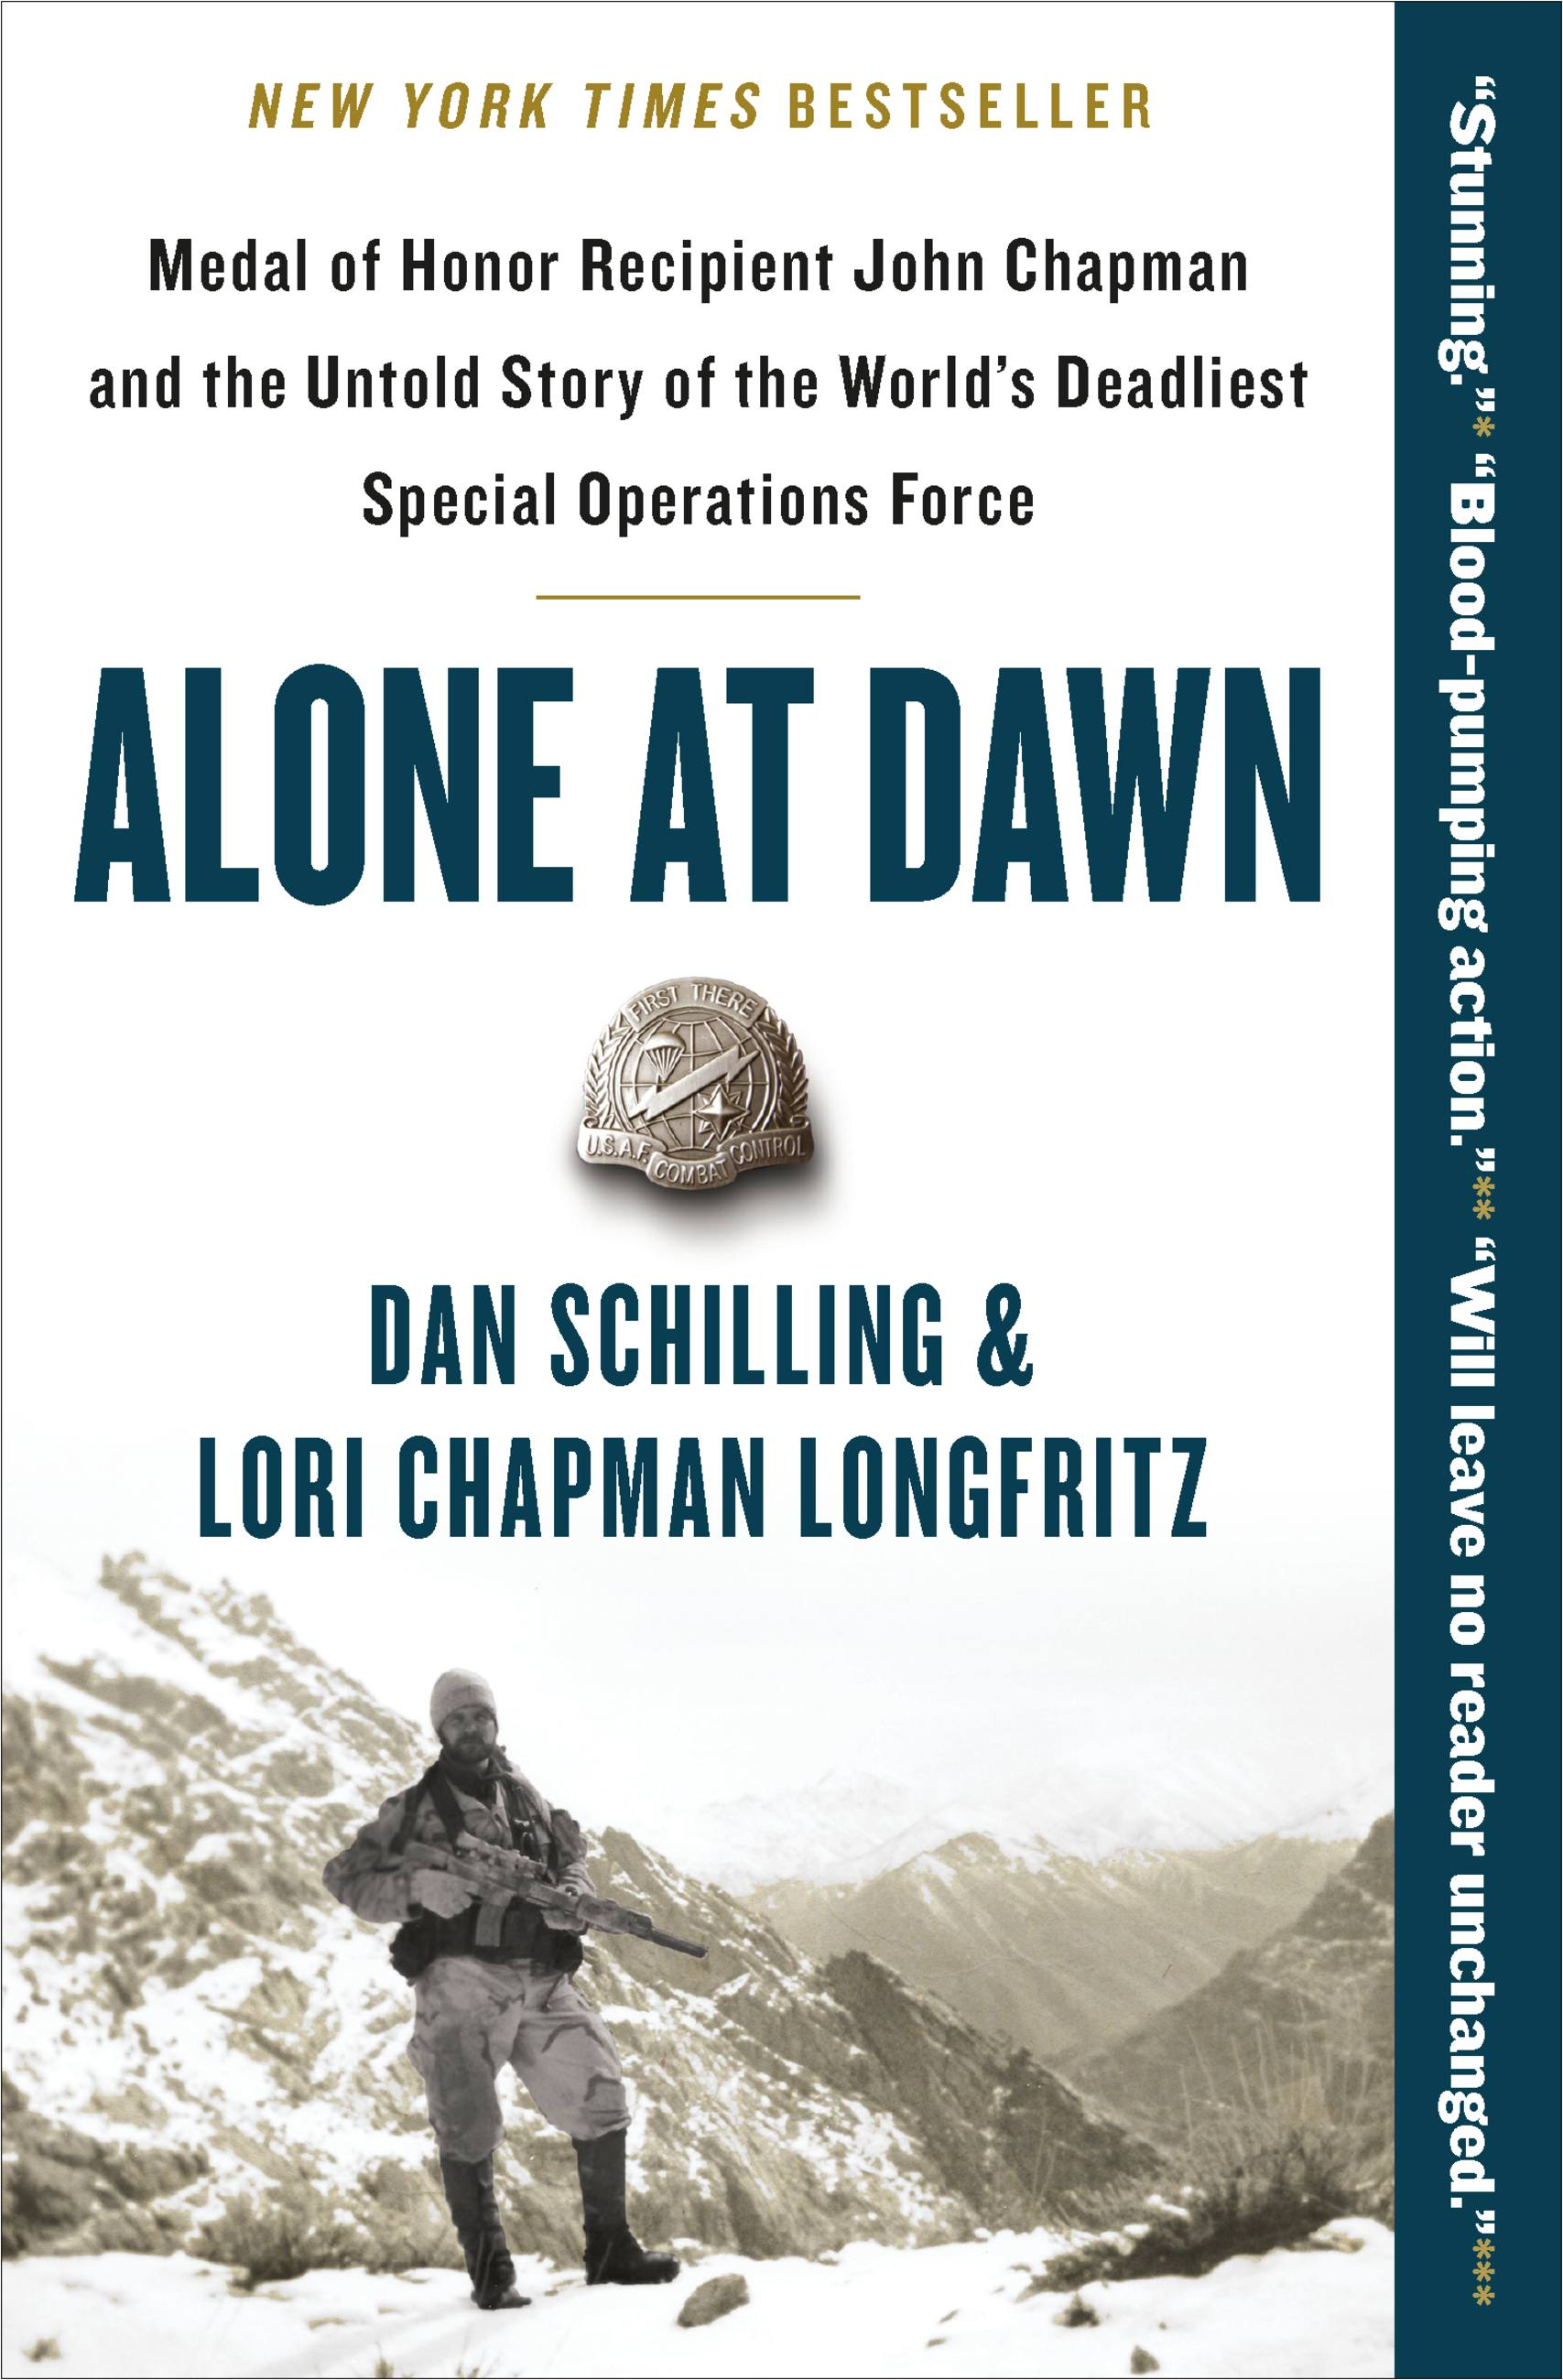 Alone at Dawn Medal of Honor Recipient John Chapman and the Untold Story of the World's Deadliest Special Operations Force